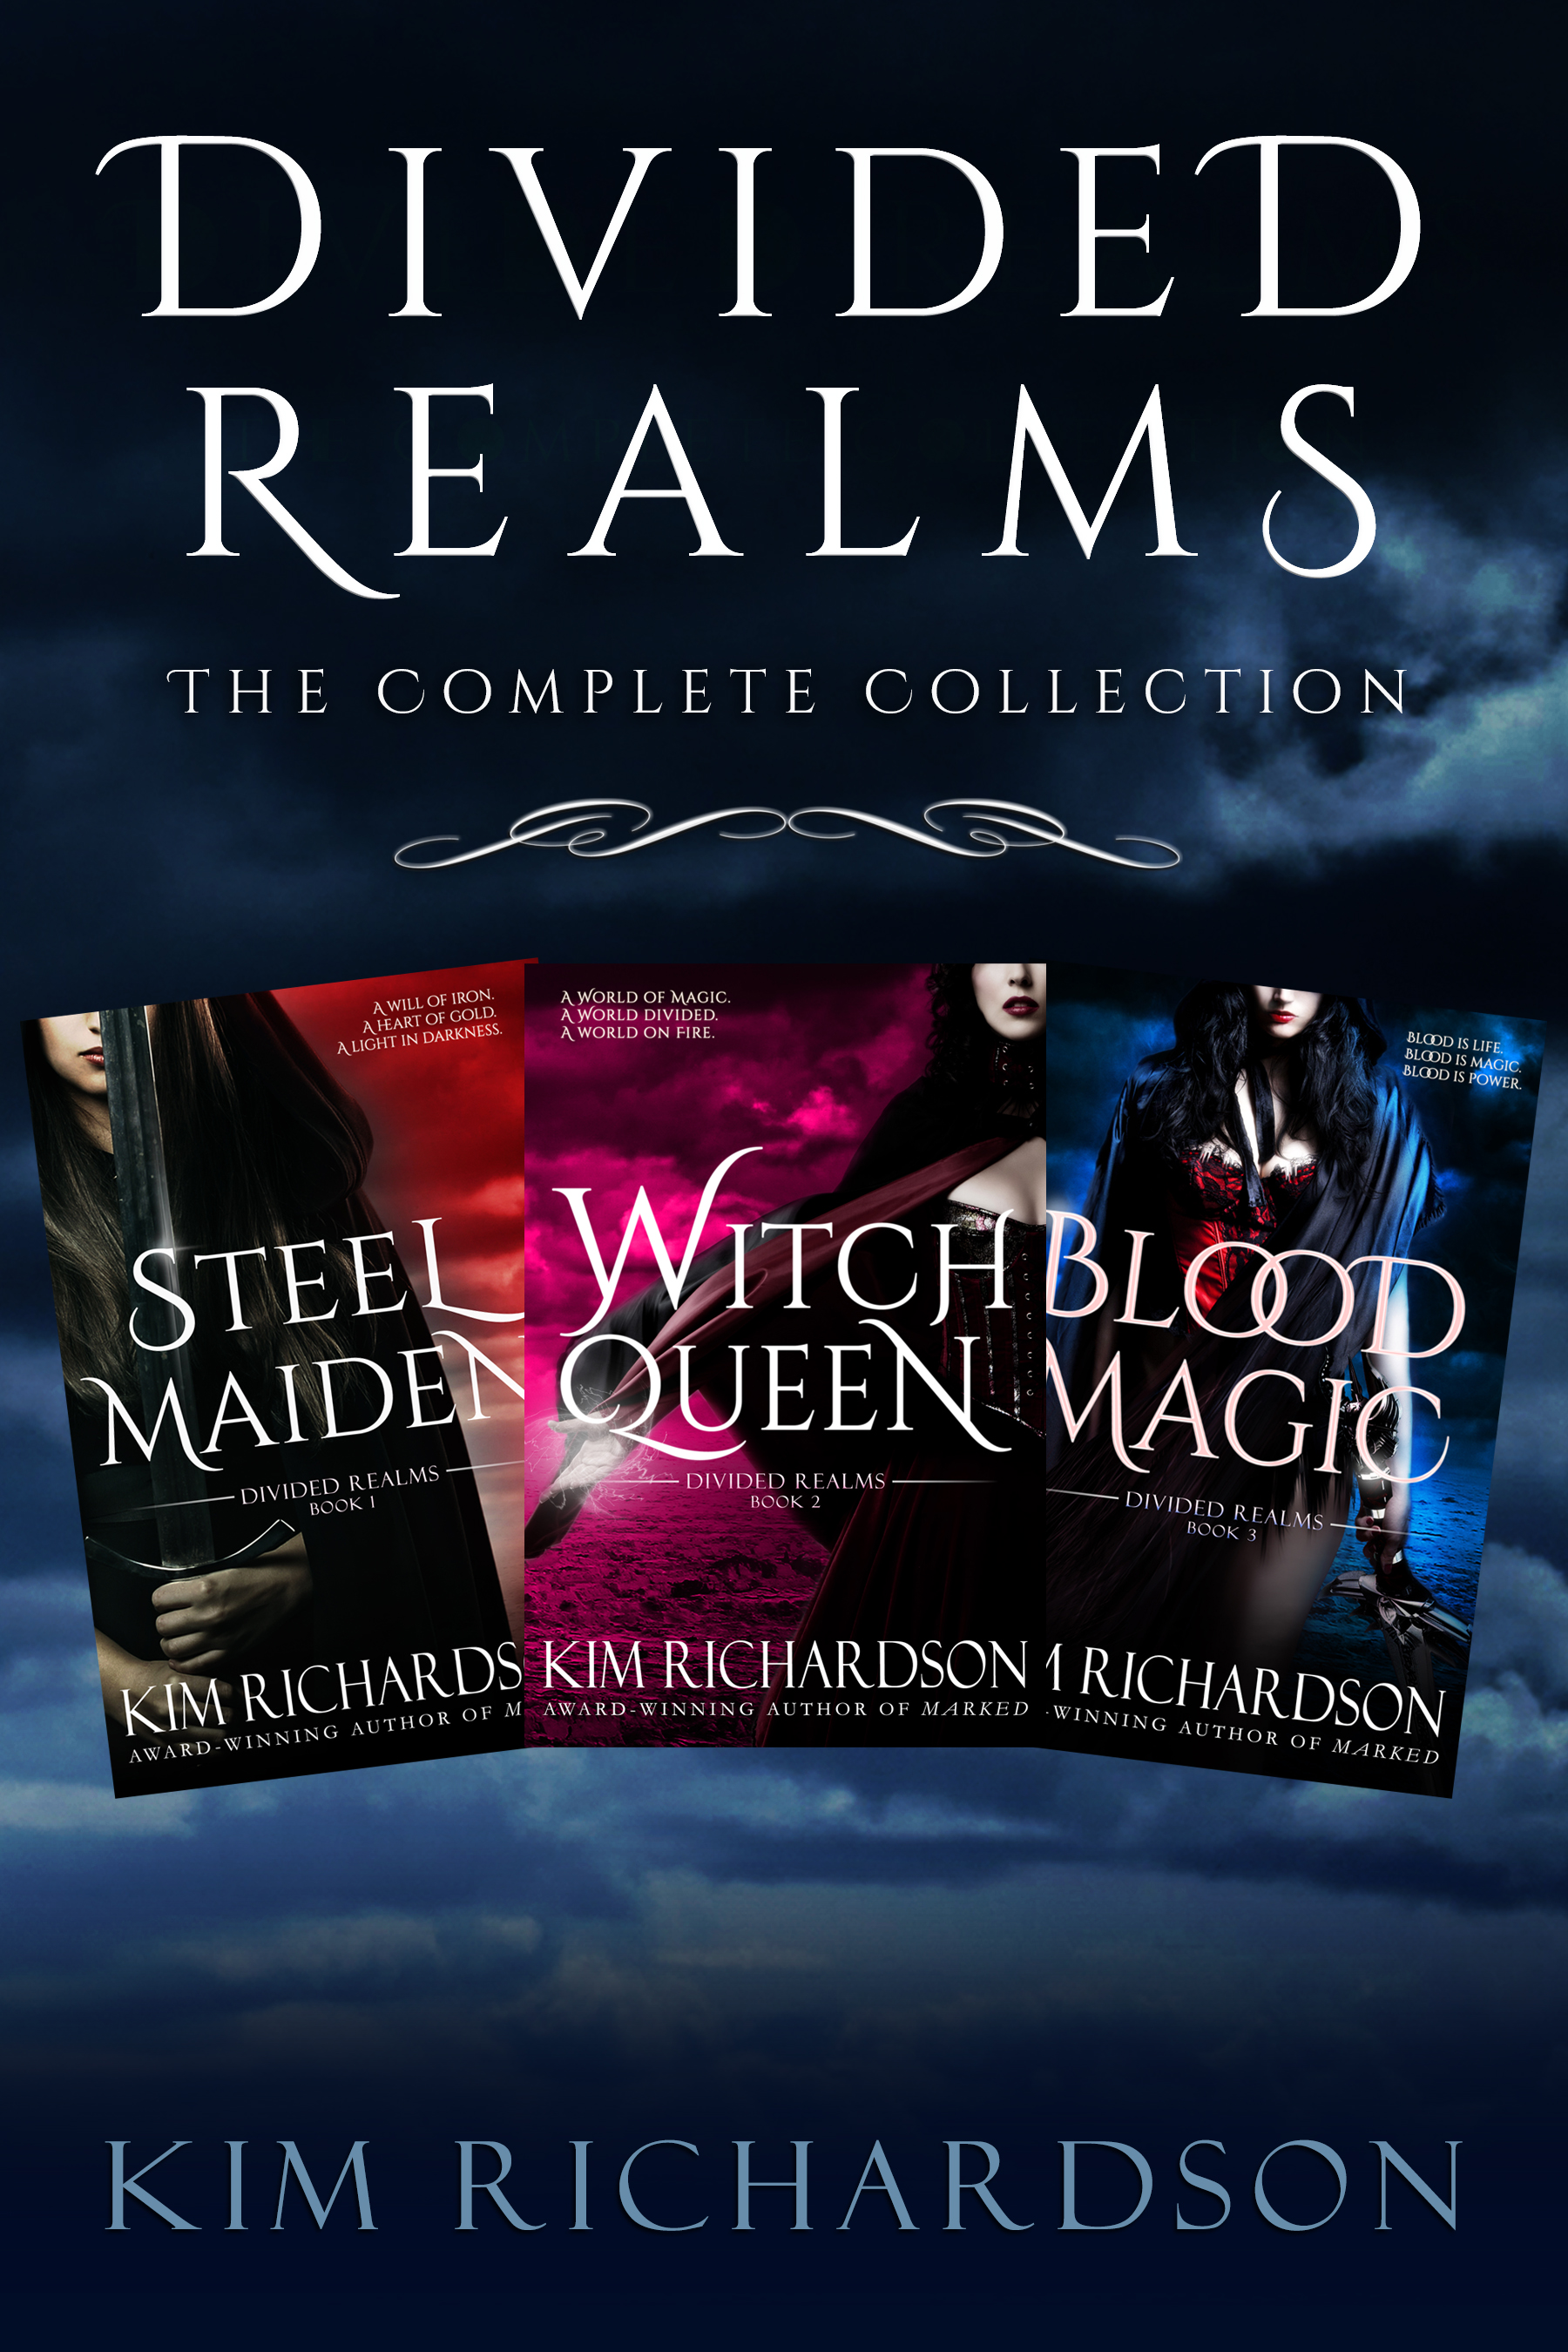 Divided Realms, The Complete Collection: Steel Maiden, Witch Queen, Blood  Magic, an Ebook by Kim Richardson